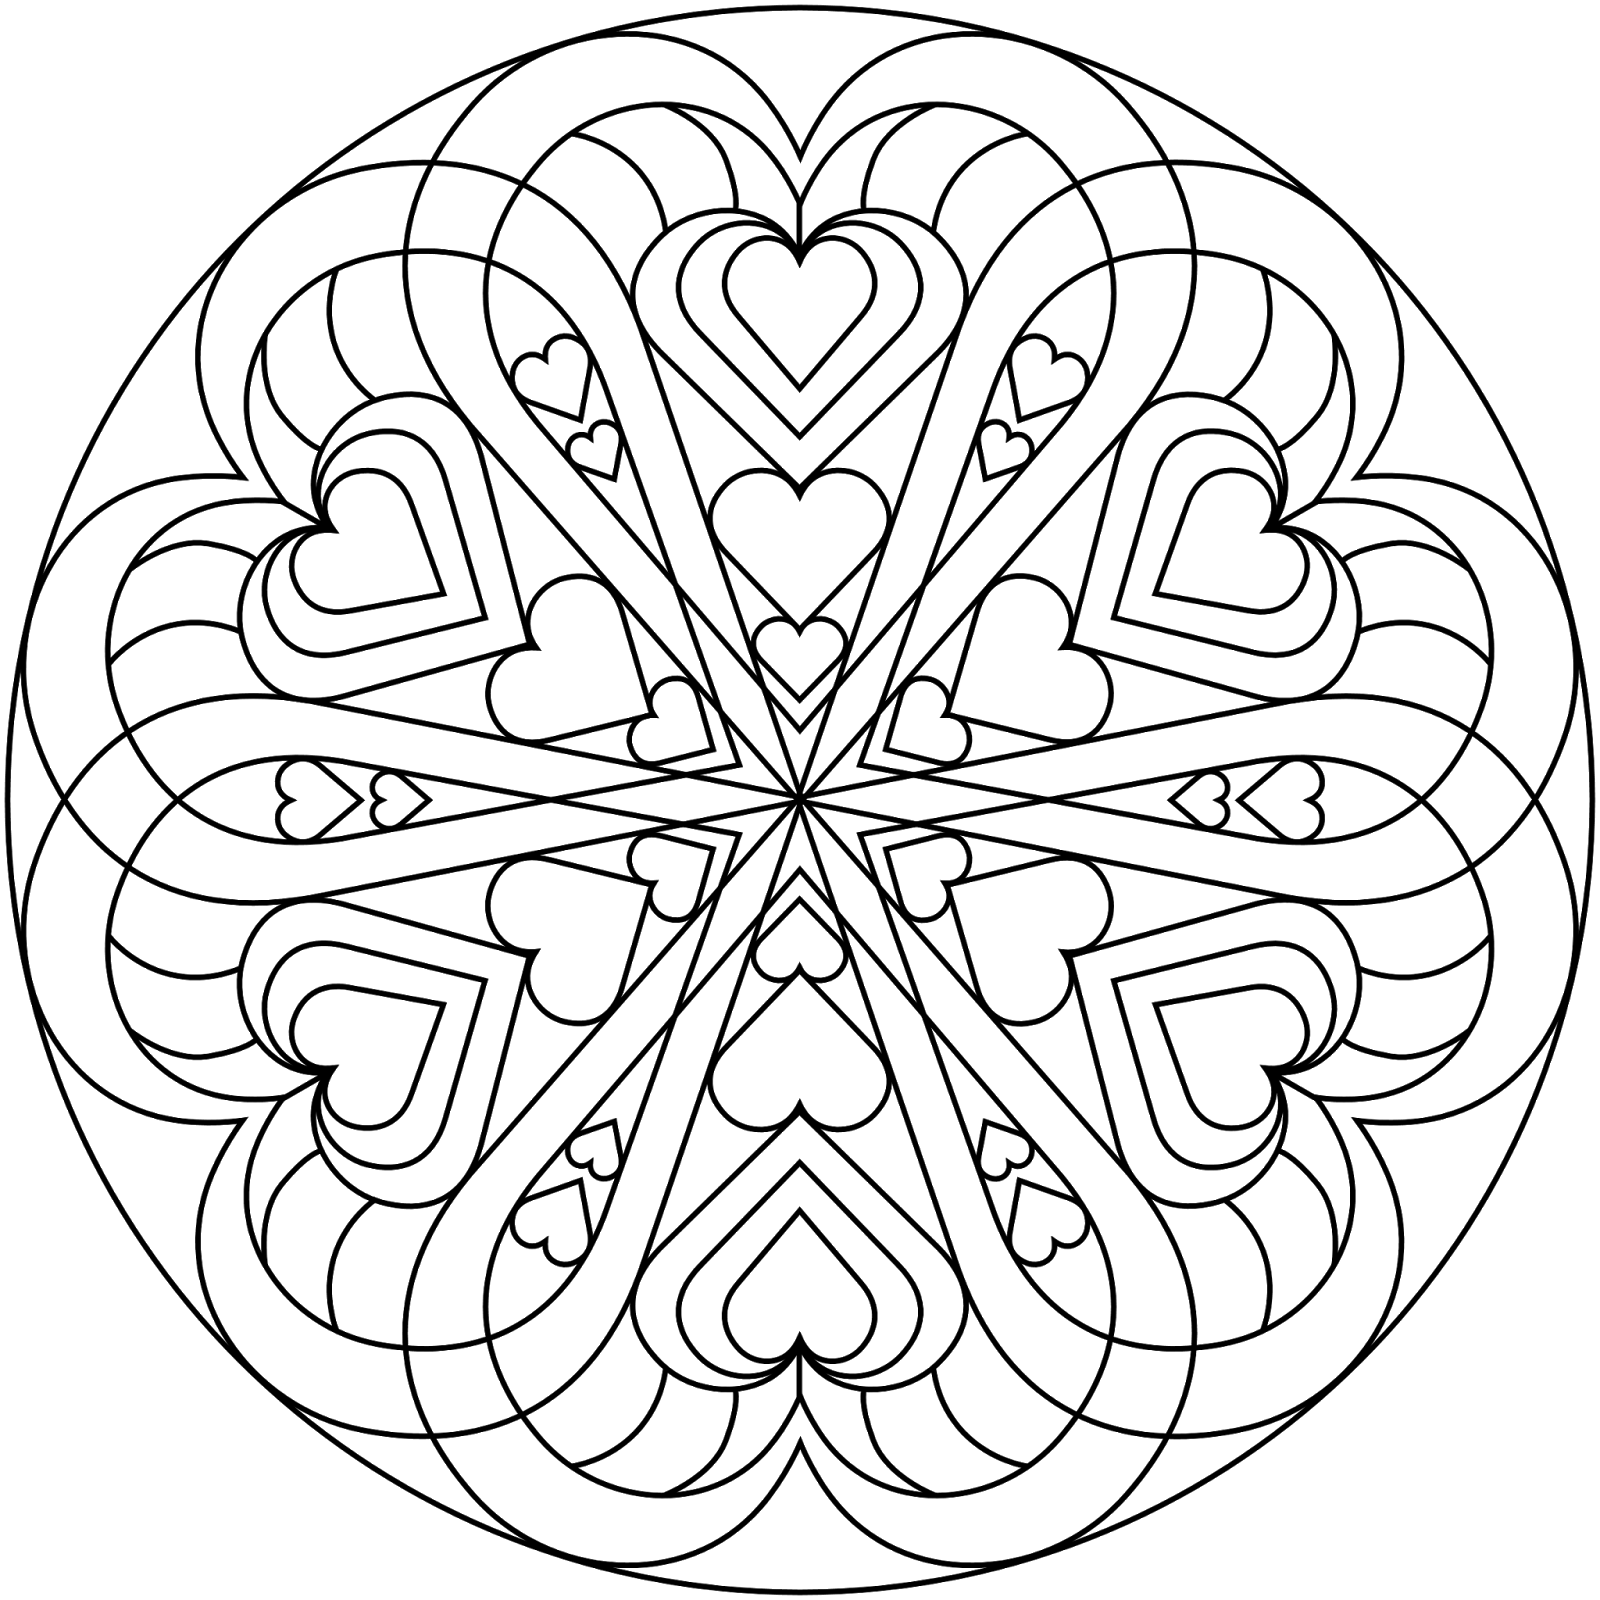 heart color pages valentines day coloring pages for adults best coloring pages color heart